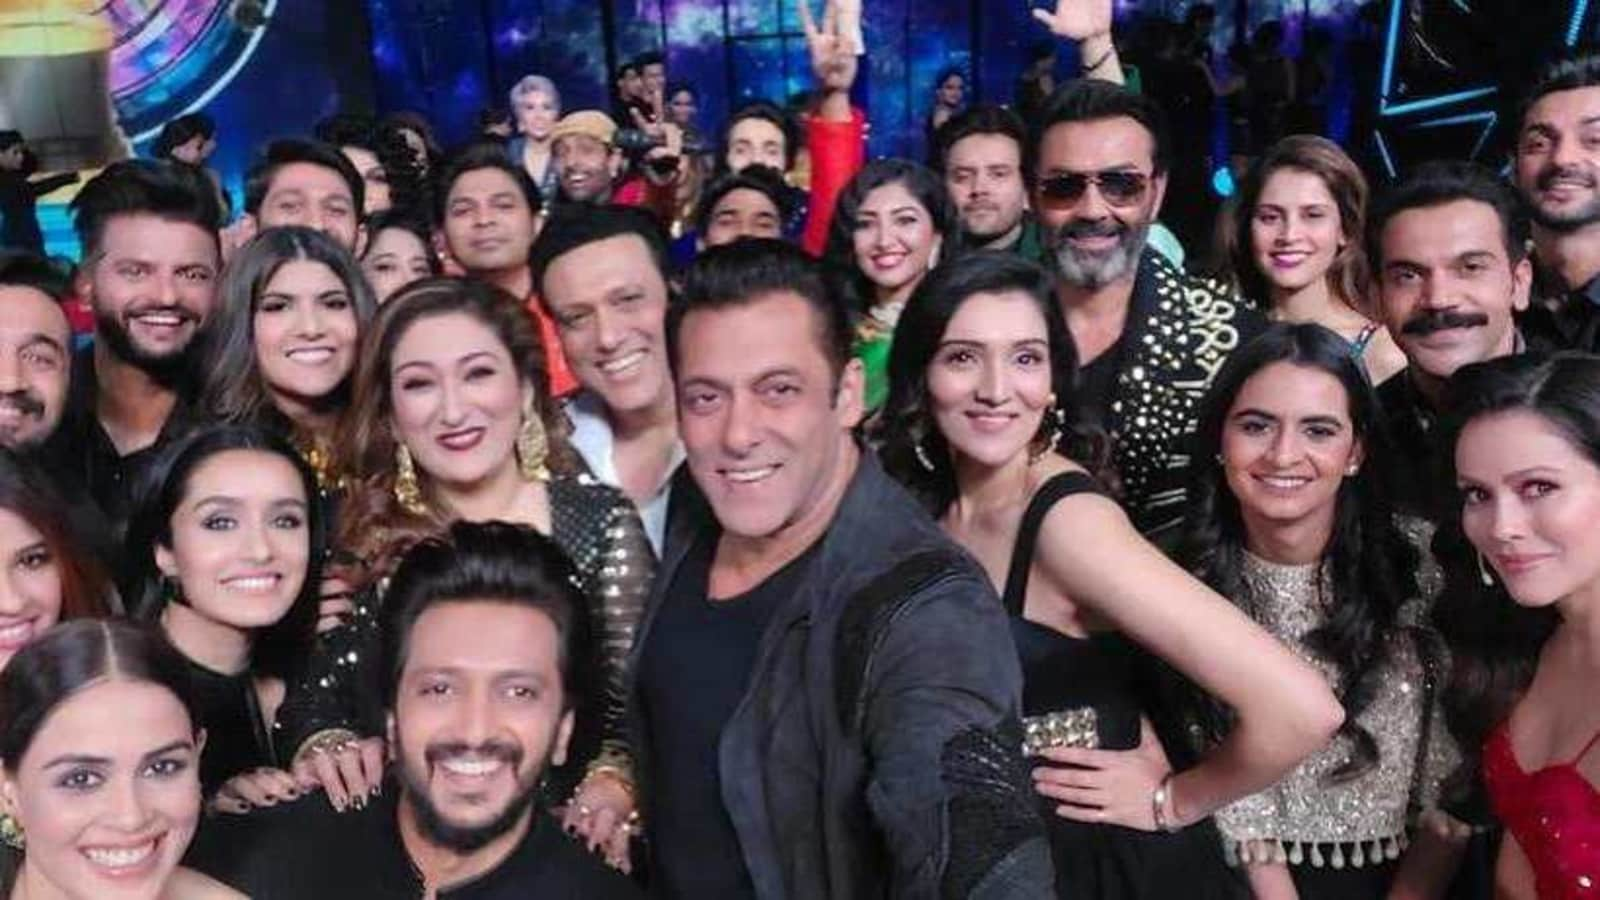 Salman Khan clicks a 'mega selfie' with Riteish Deshmukh, Shraddha Kapoor, Govinda at Indian Pro Music League - Hindustan Times